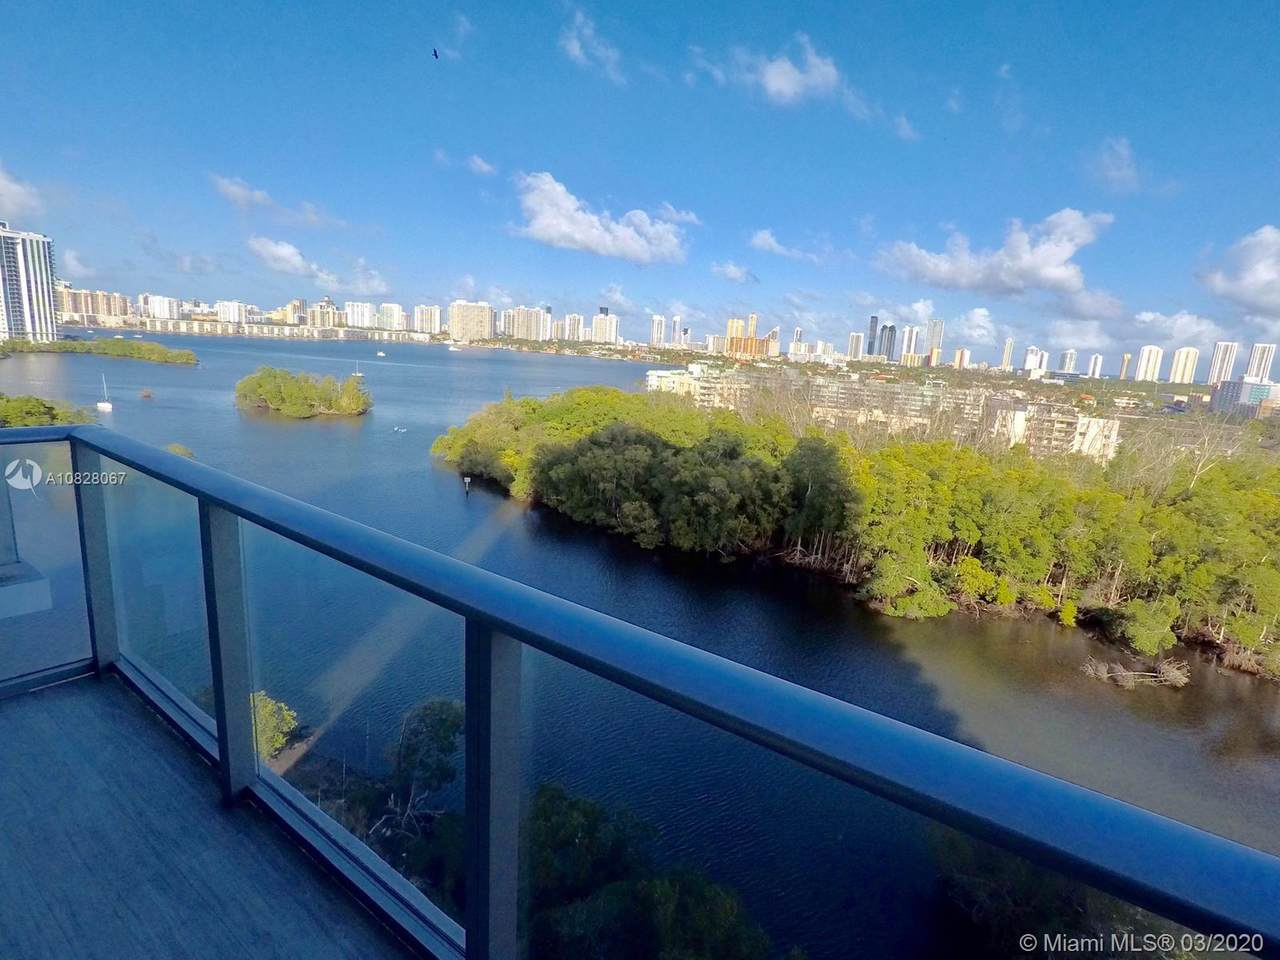 16385 Biscayne Blvd - Photo 1